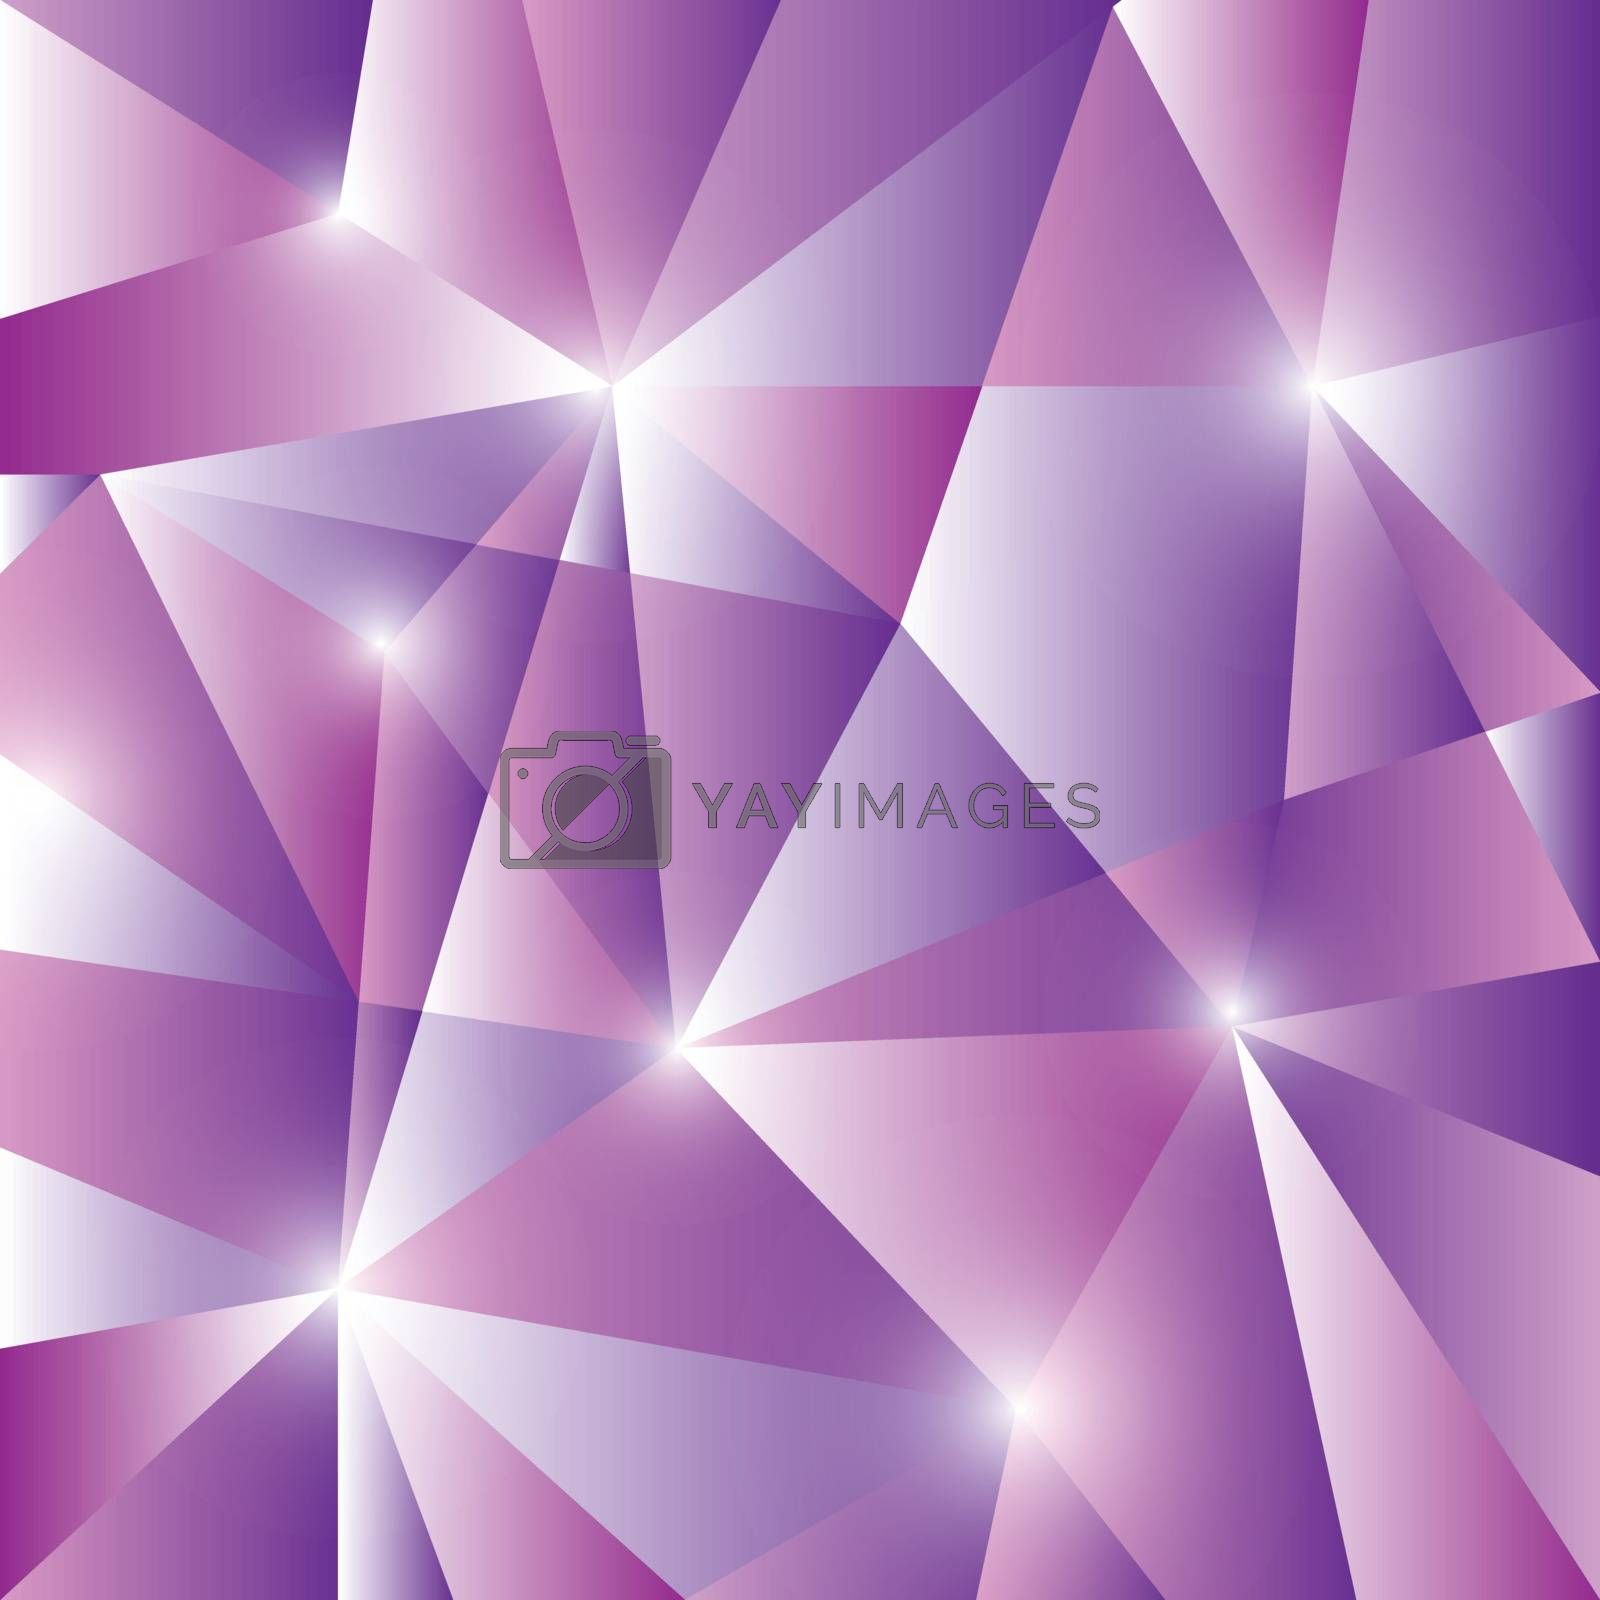 Geometric pattern with triangles background, stock vector